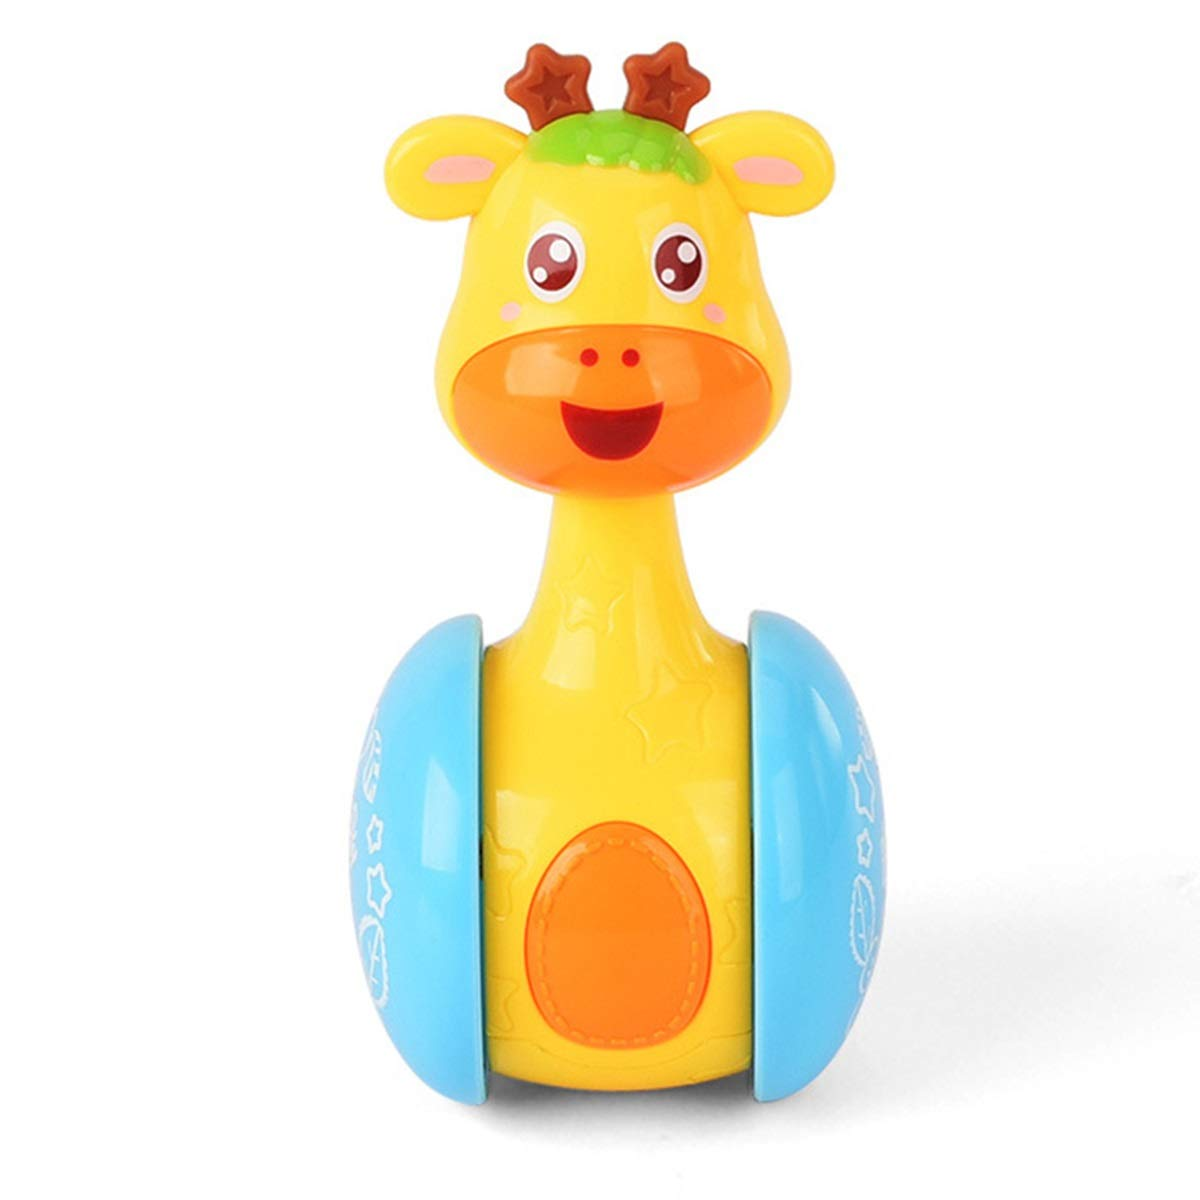 Baby Cartoon Giraffe Rattle Tumbler Doll Toy Hand Jingle Shake Ring Bell Roly-Poly Learning Education Intelligence Development Toy Tabpole